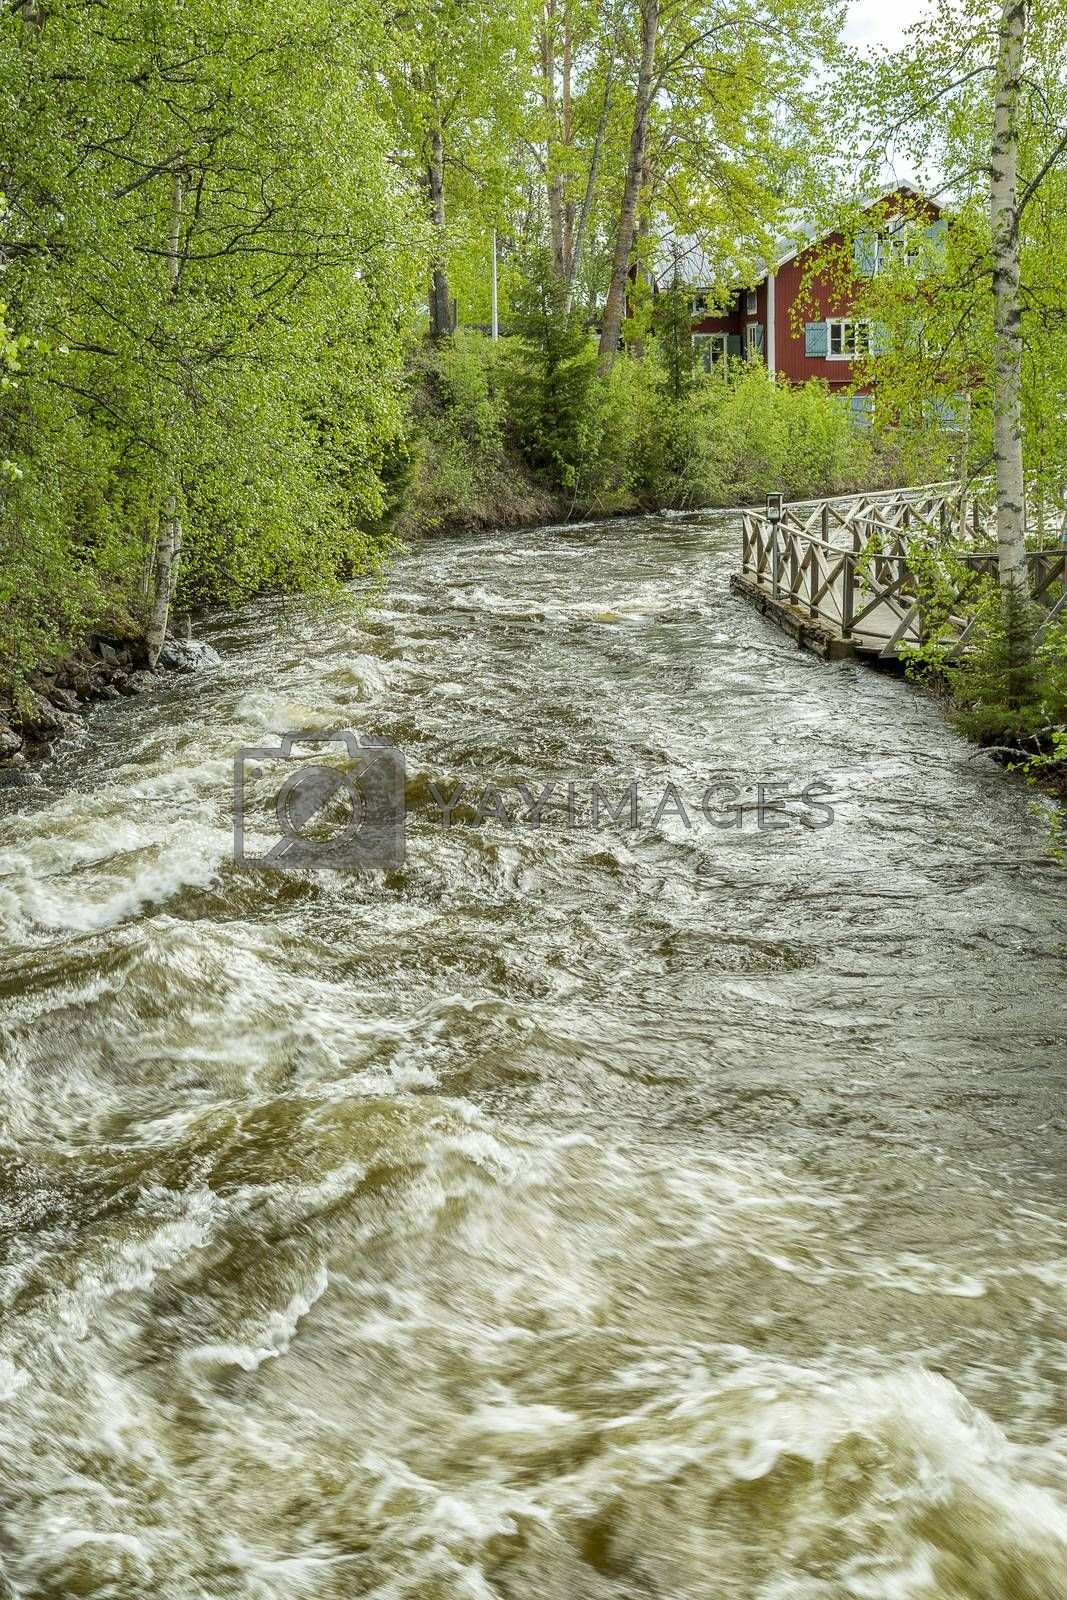 The Rapids at Renforsen in Vindeln, Sweden with old mill.